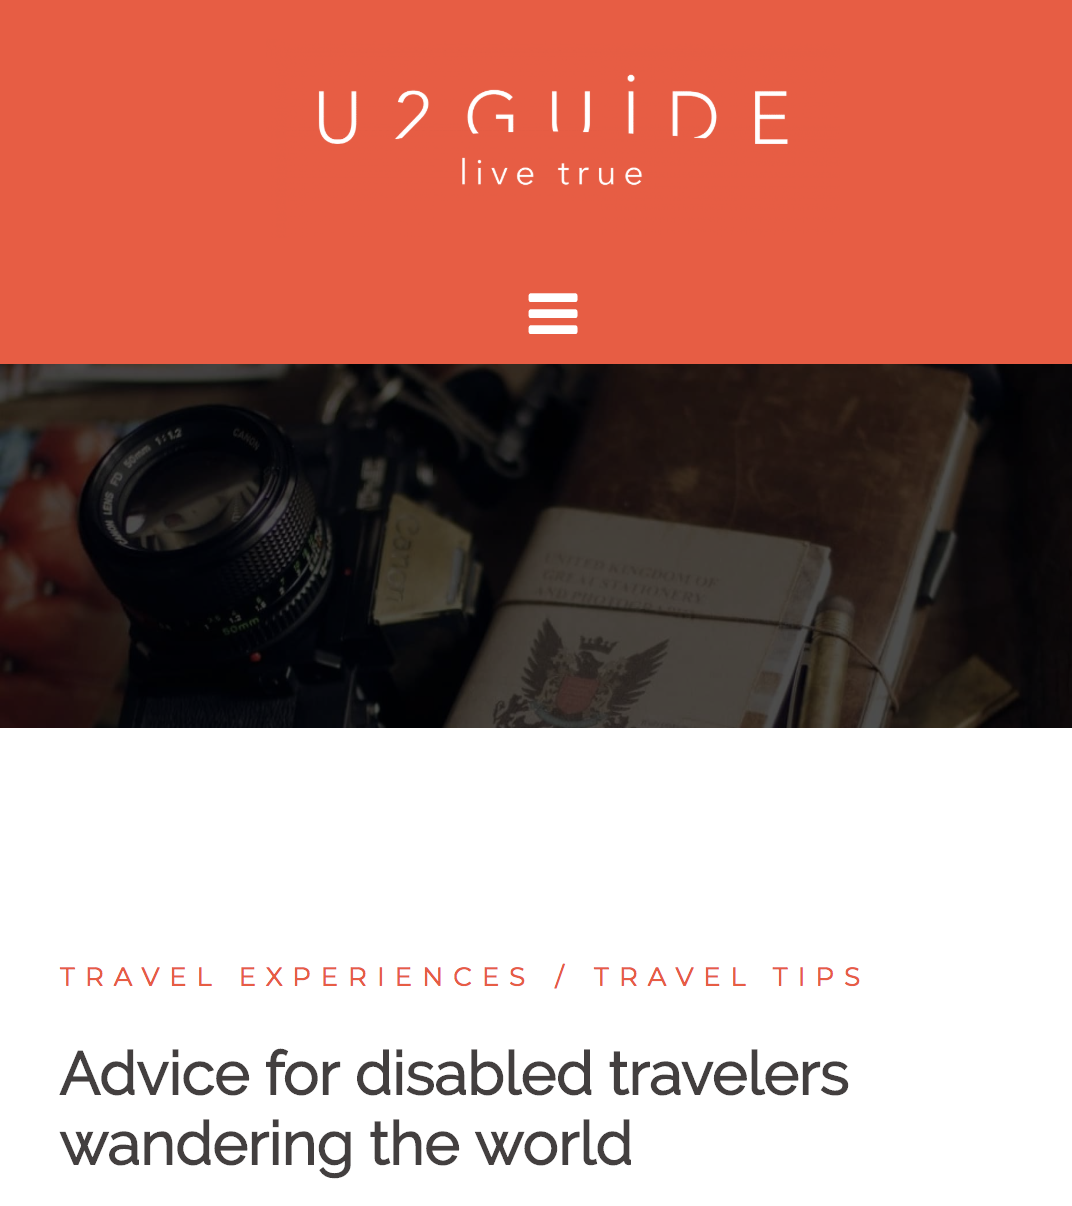 Blog Post U2Guide Advice for disabled travelers wandering the world